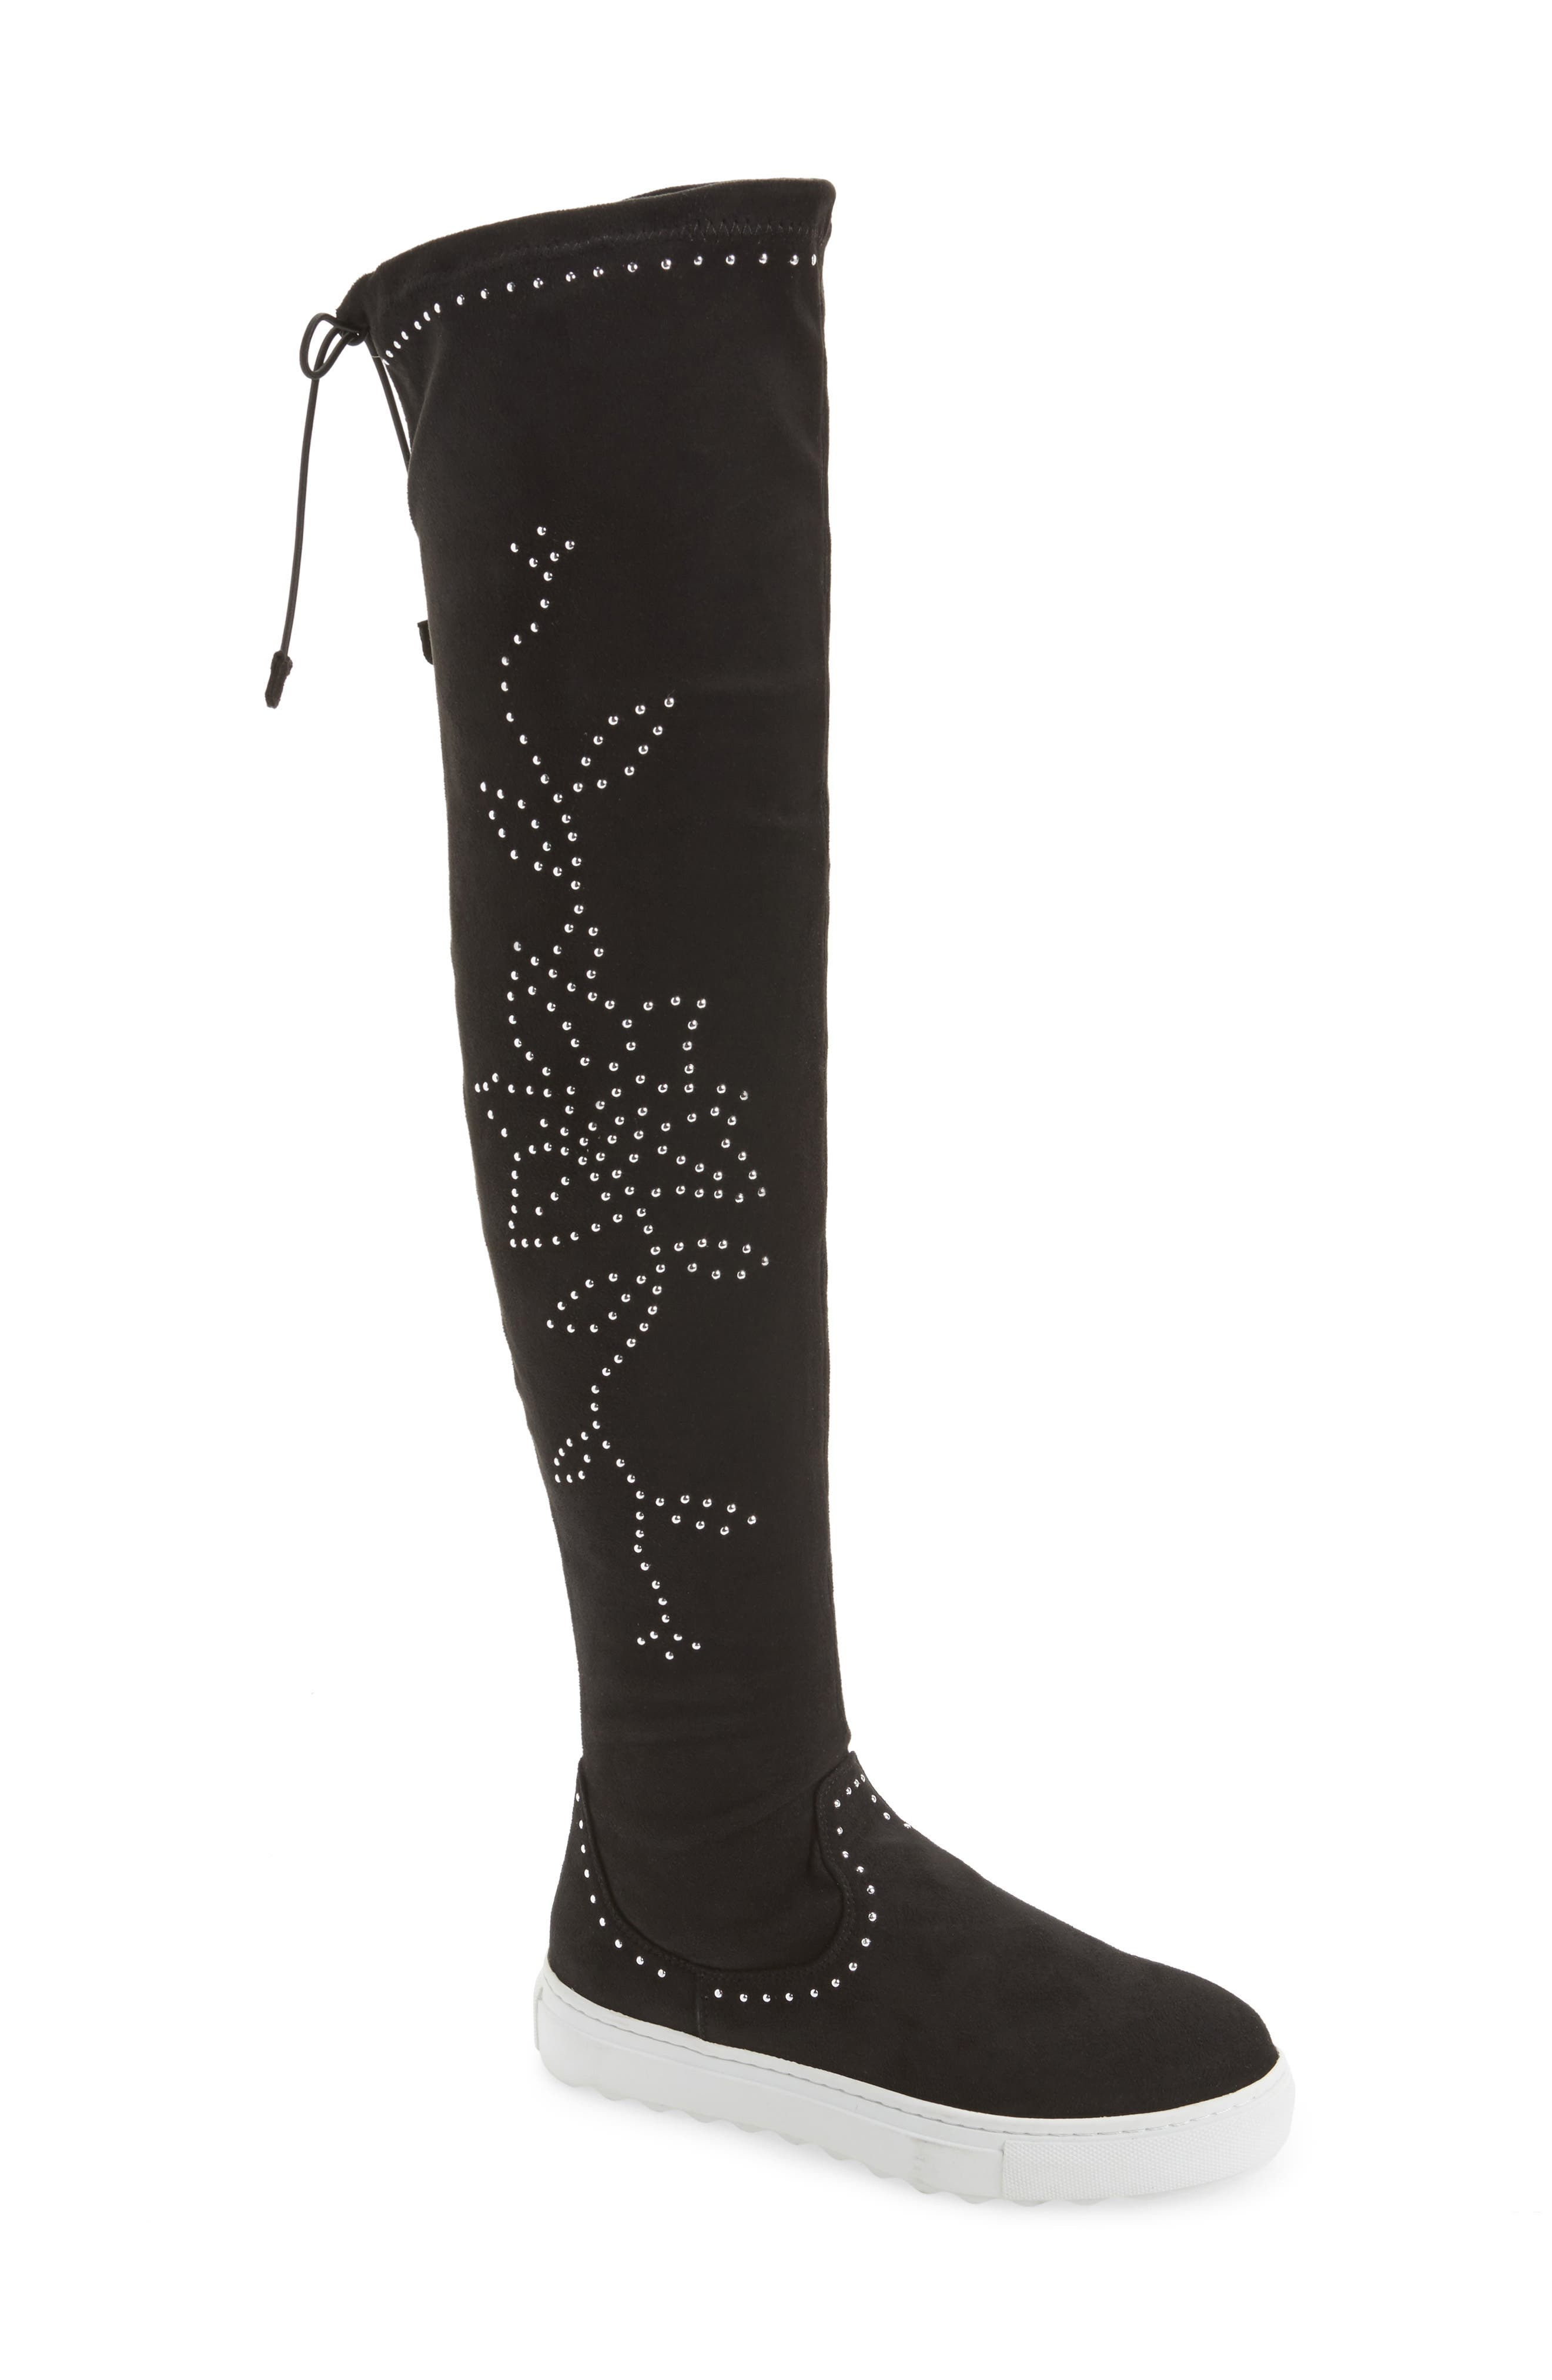 Plentee Over the Knee Boot,                             Main thumbnail 1, color,                             001